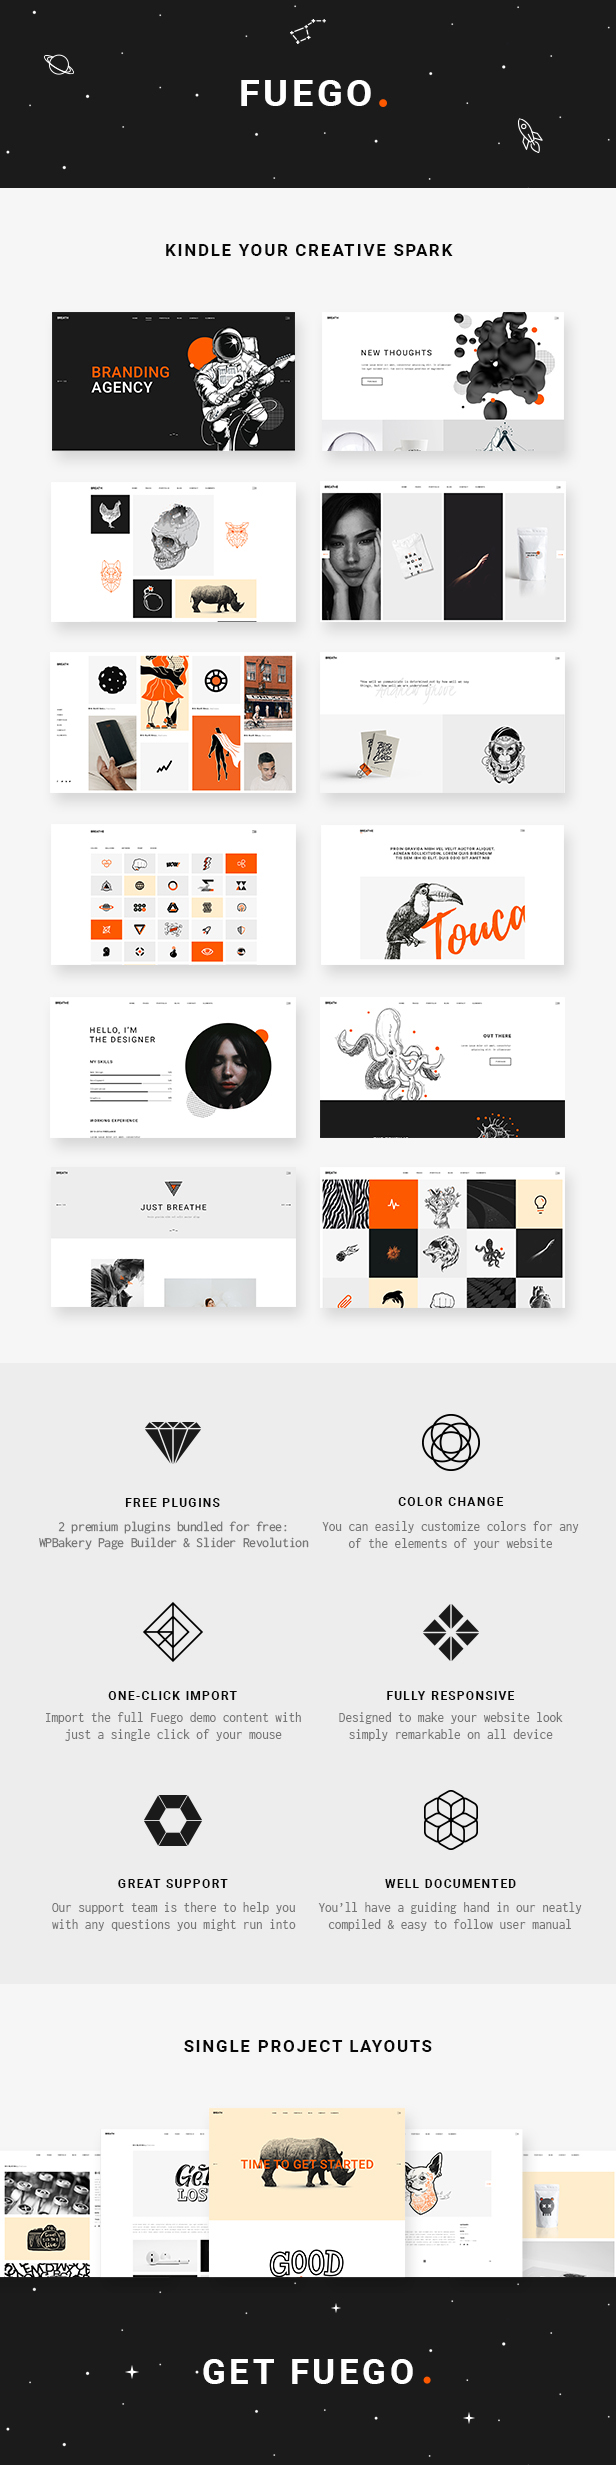 Fuego - Creative Portfolio Theme for Design Agencies - 1